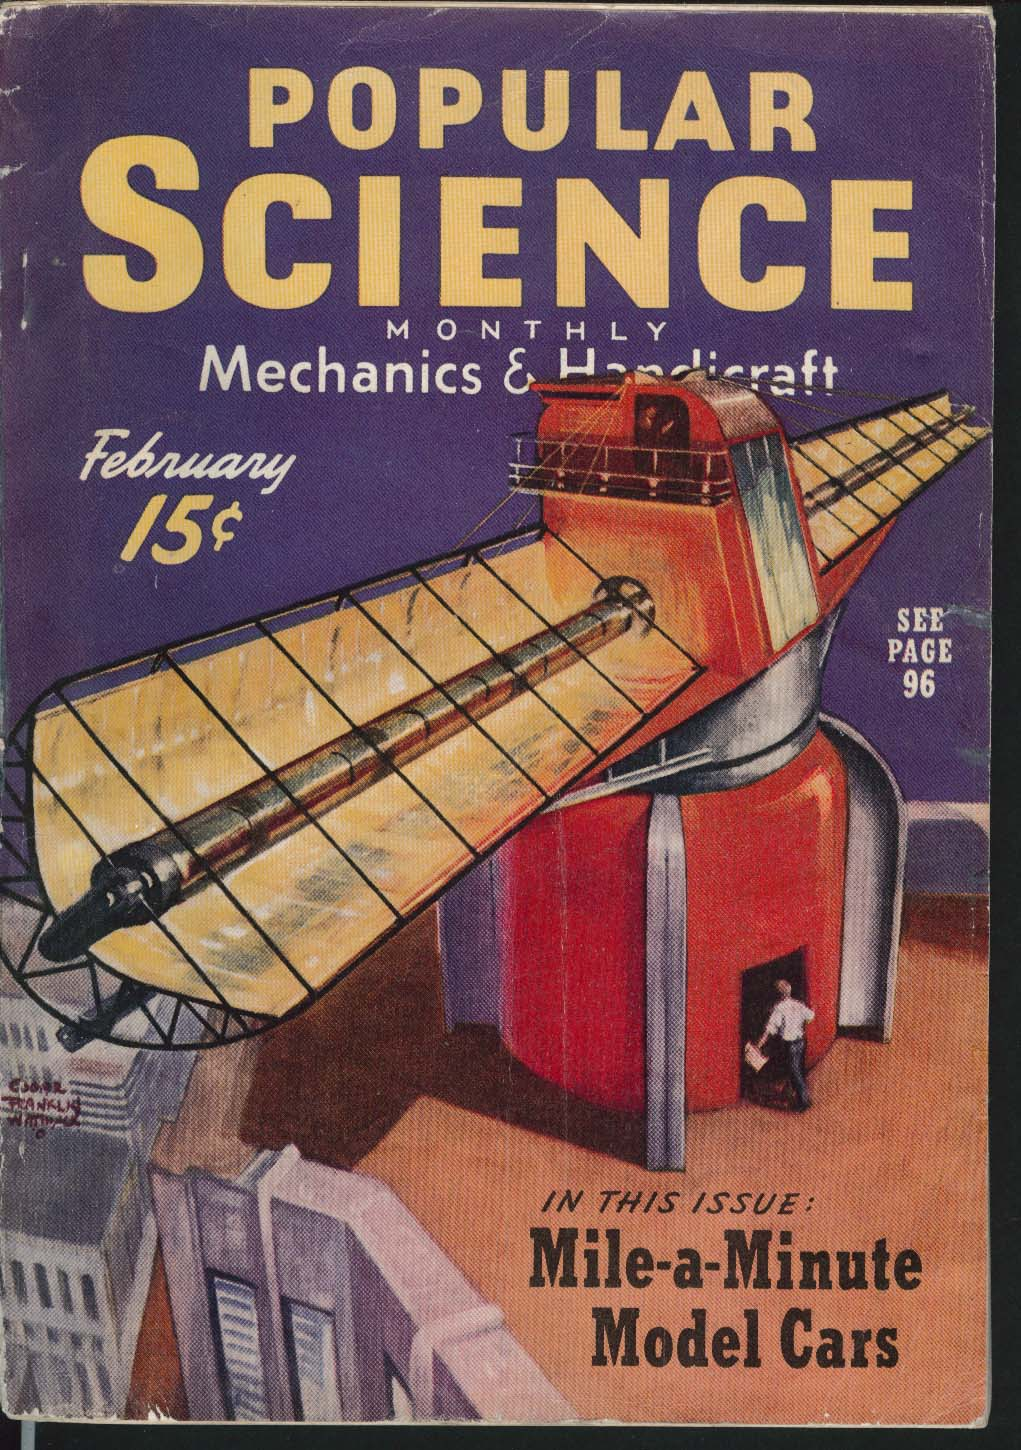 Image for POPULAR SCIENCE Overhead Garage Door Skiing Fitness Observatory 2 1940